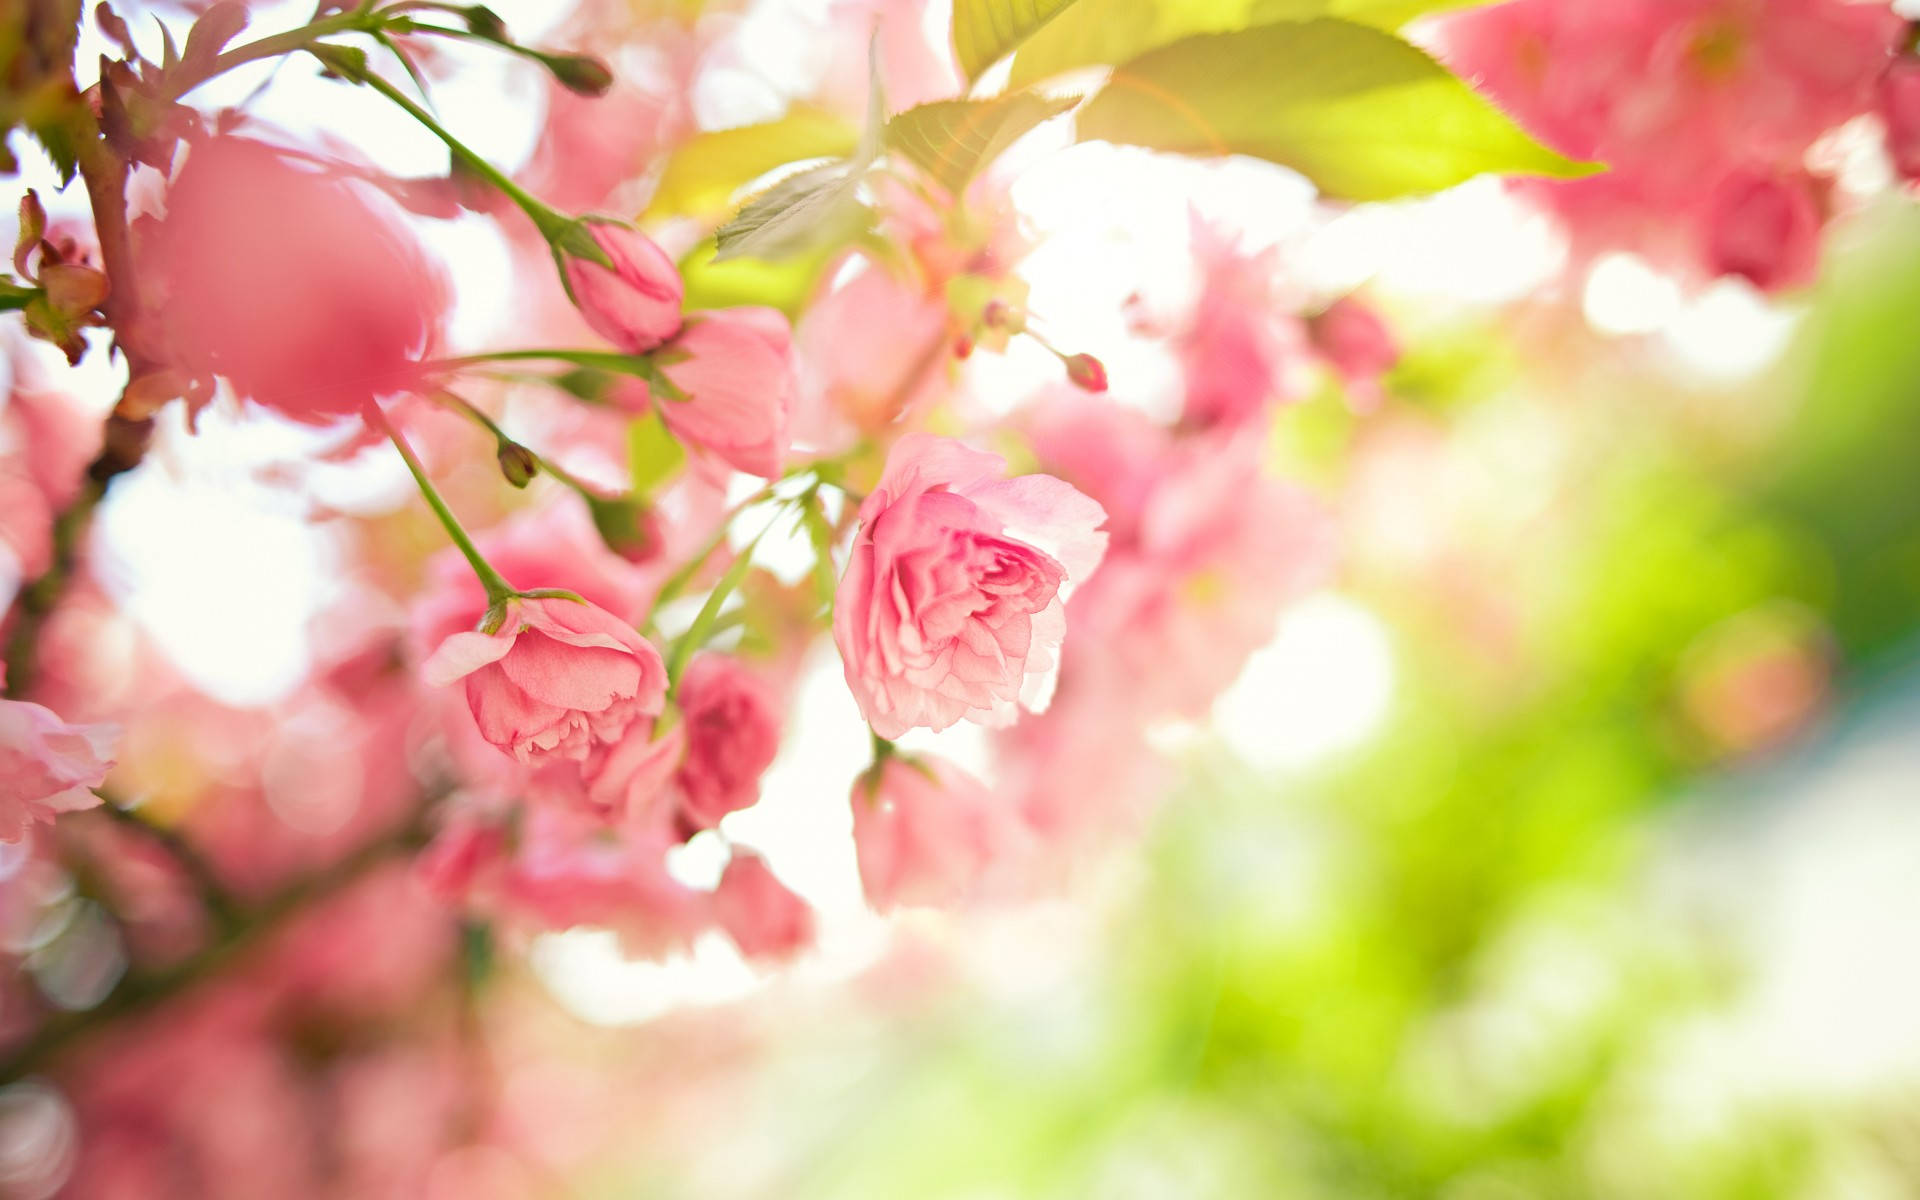 Tree Branches Pink Flowers Leaves Spring Macro Wallpaper 1920x1200